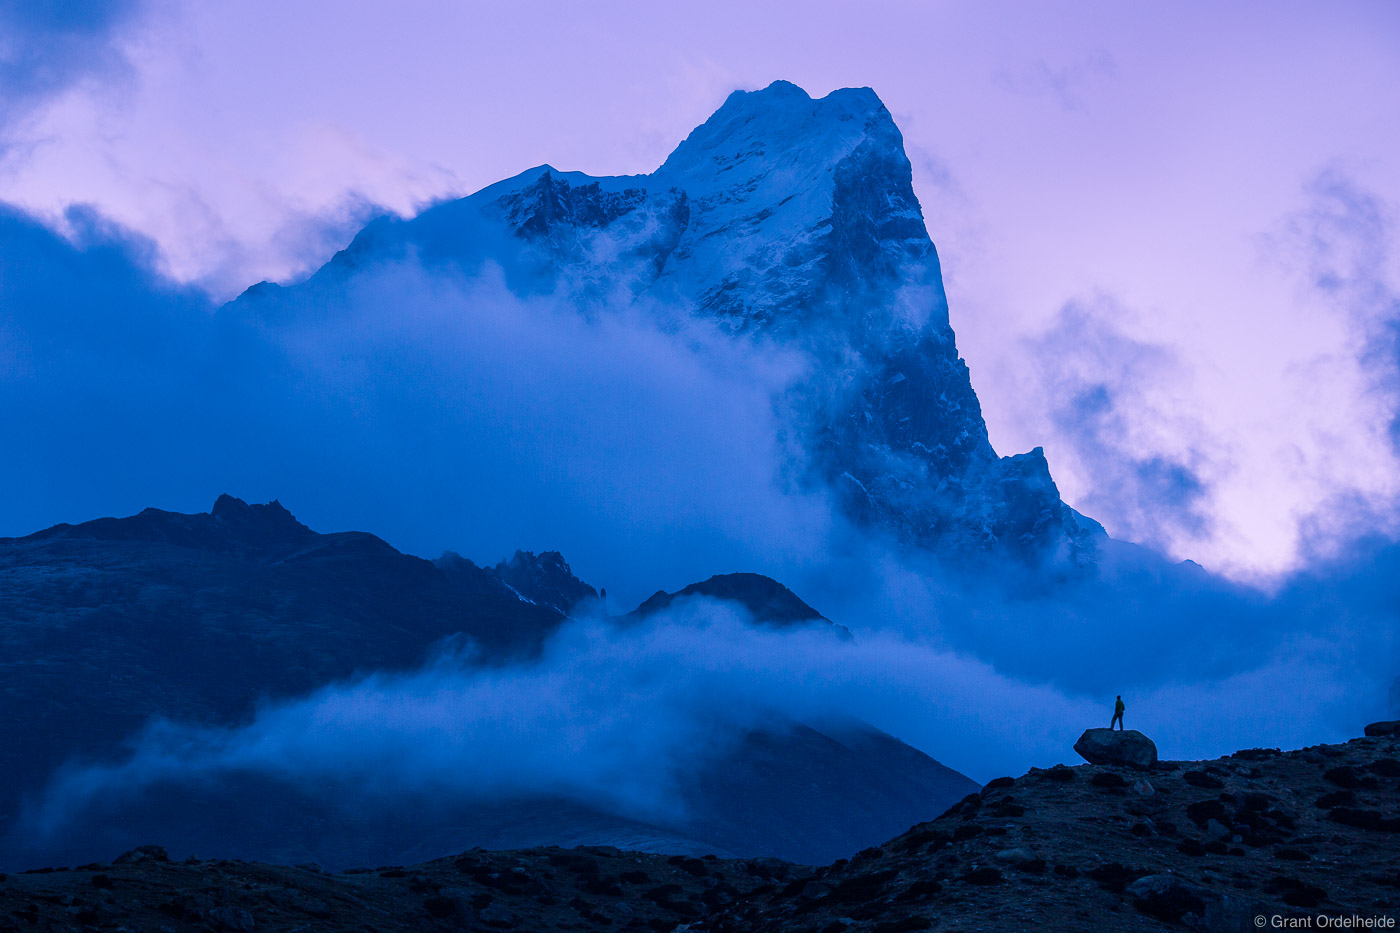 A silhouetted figure gives scale to the massive mountain Taboche as night falls in the Himalaya.